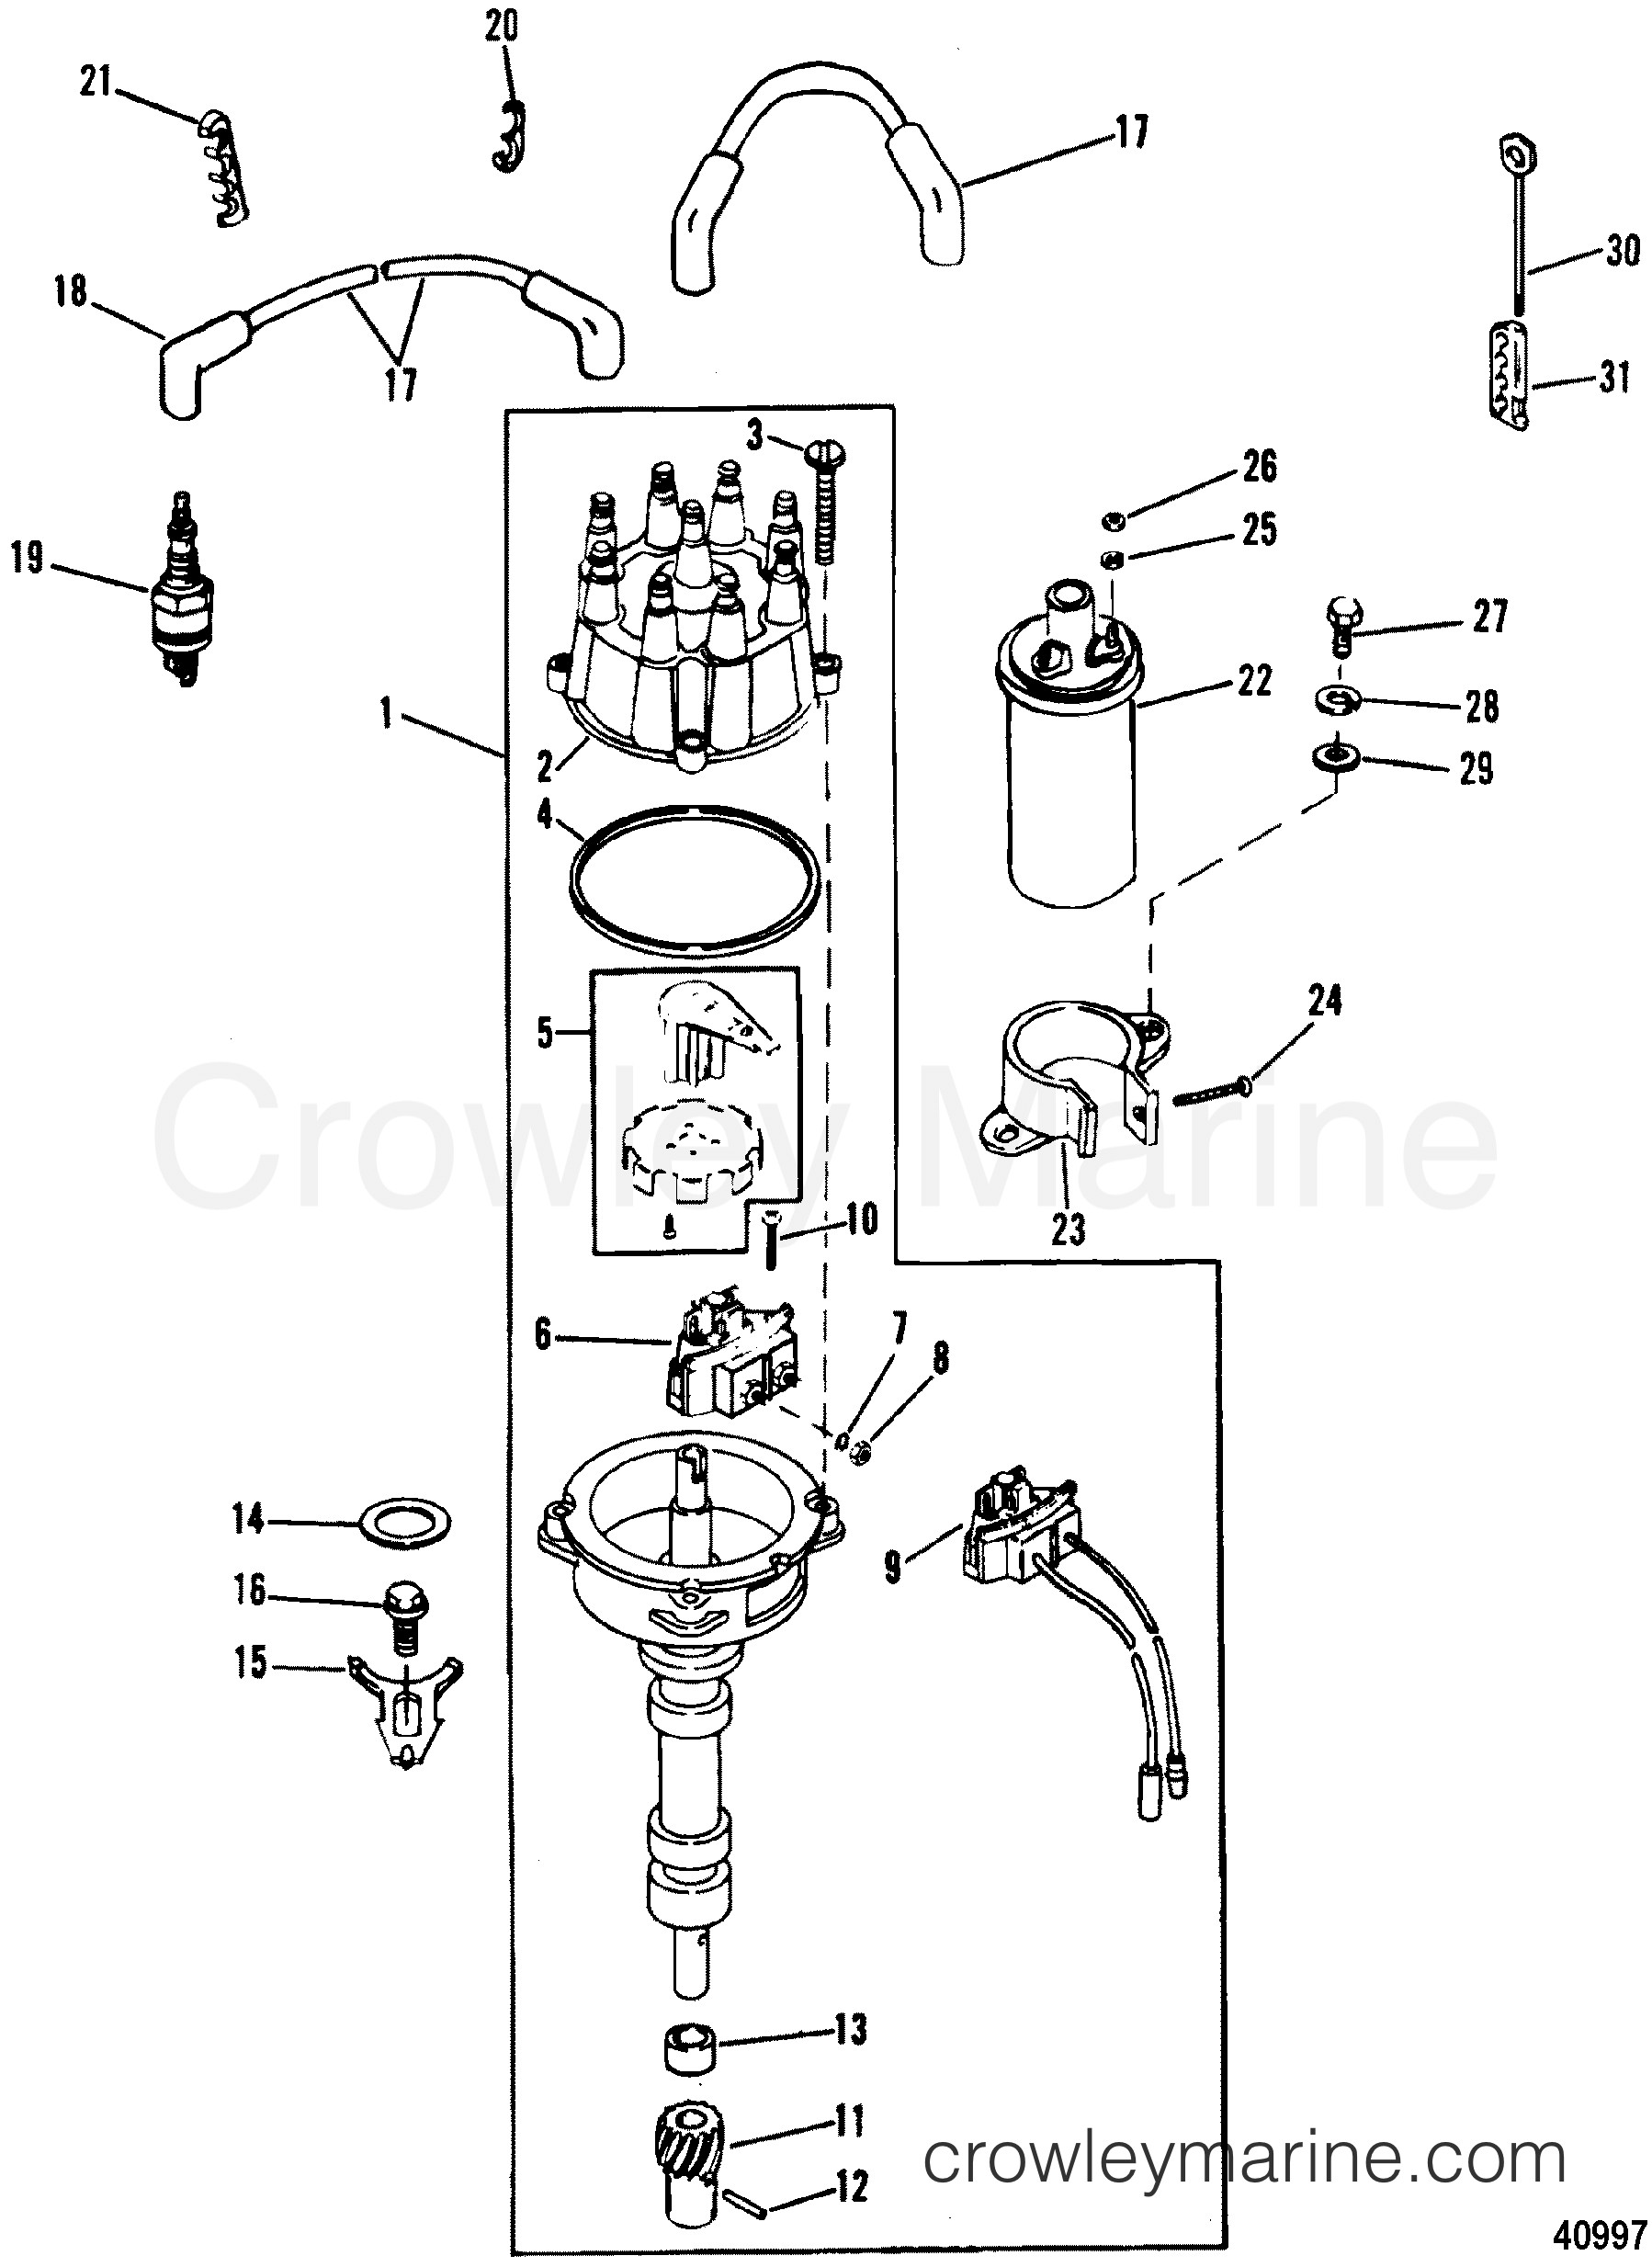 Inboard Outboard Engine Diagram